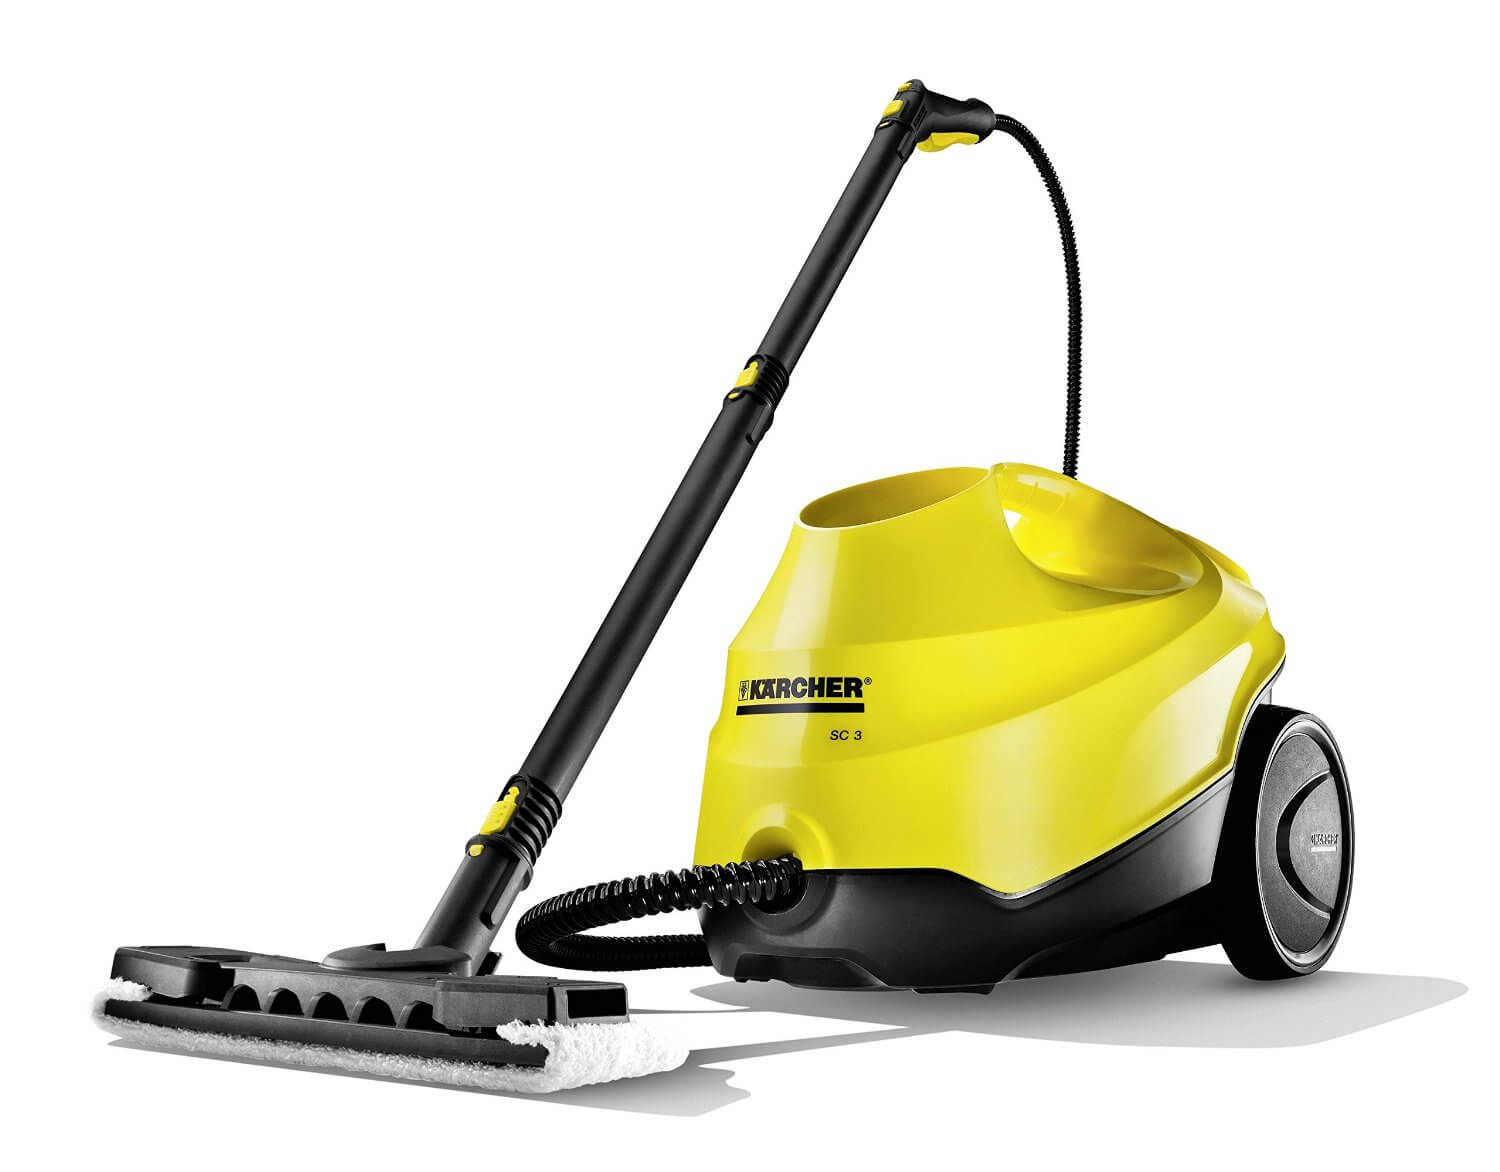 Best Steam Cleaner Reviews - Best steam cleaner for walls